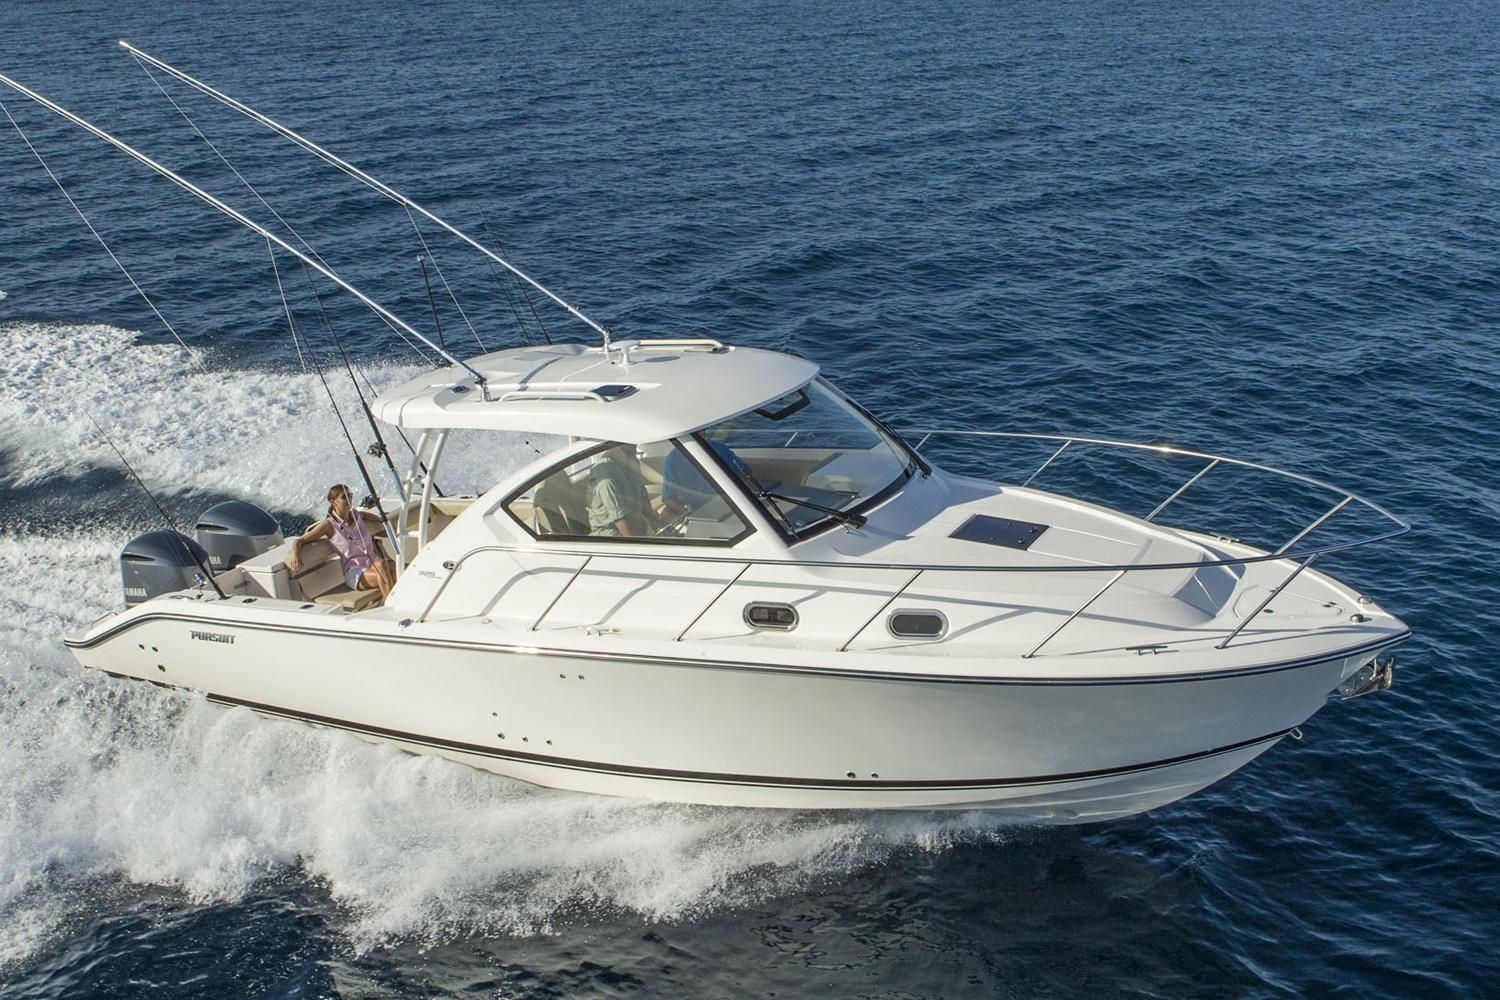 2017 Pursuit Os 325 Offshore Power Boat For Sale Www